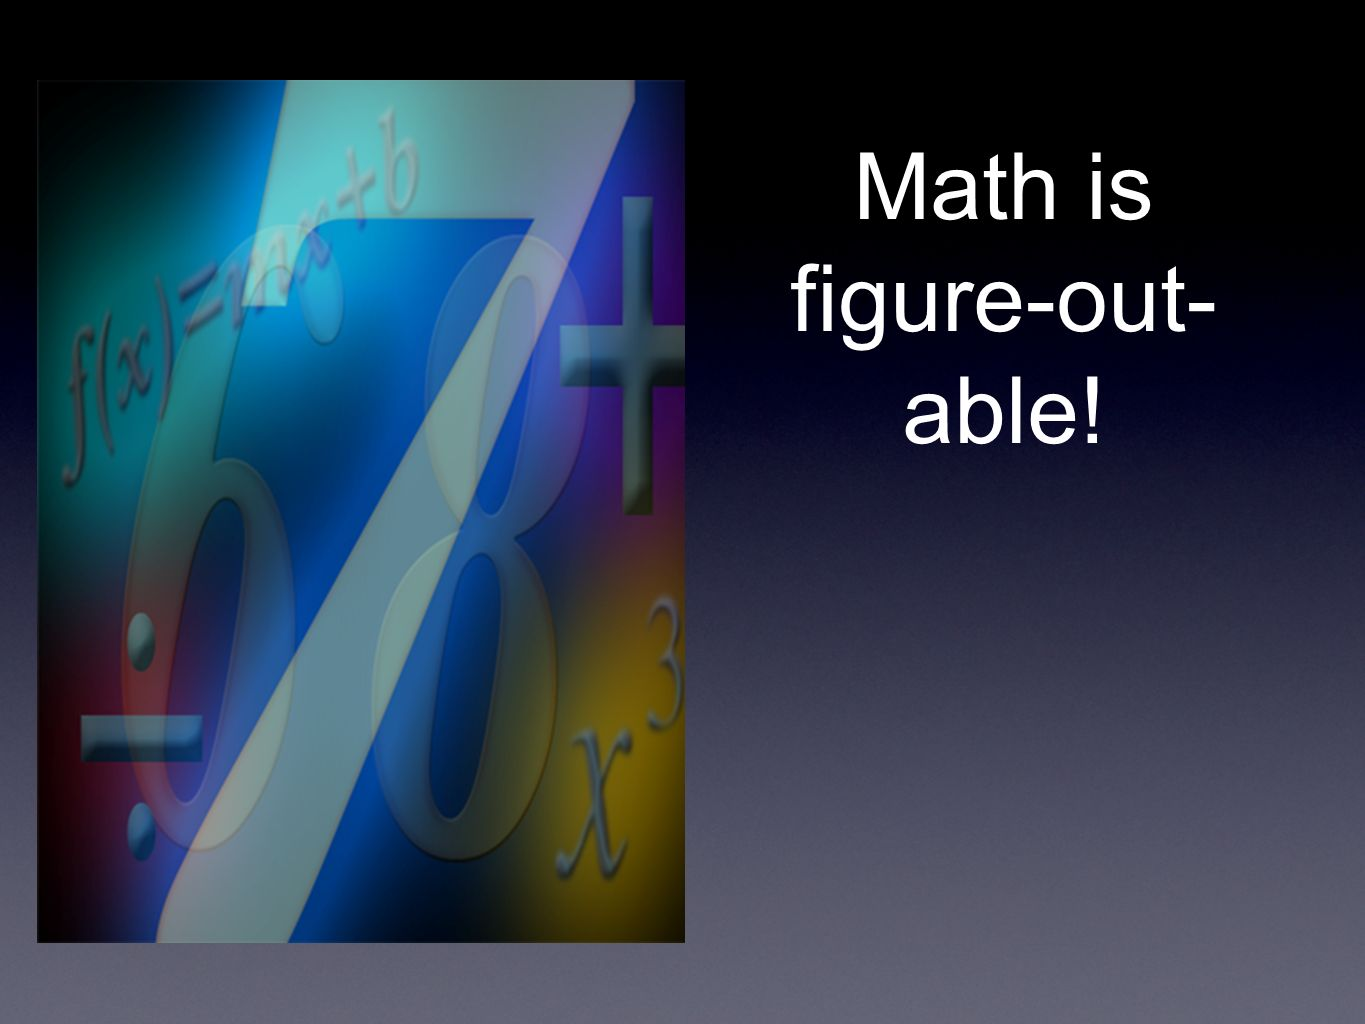 Math is figure-out- able!